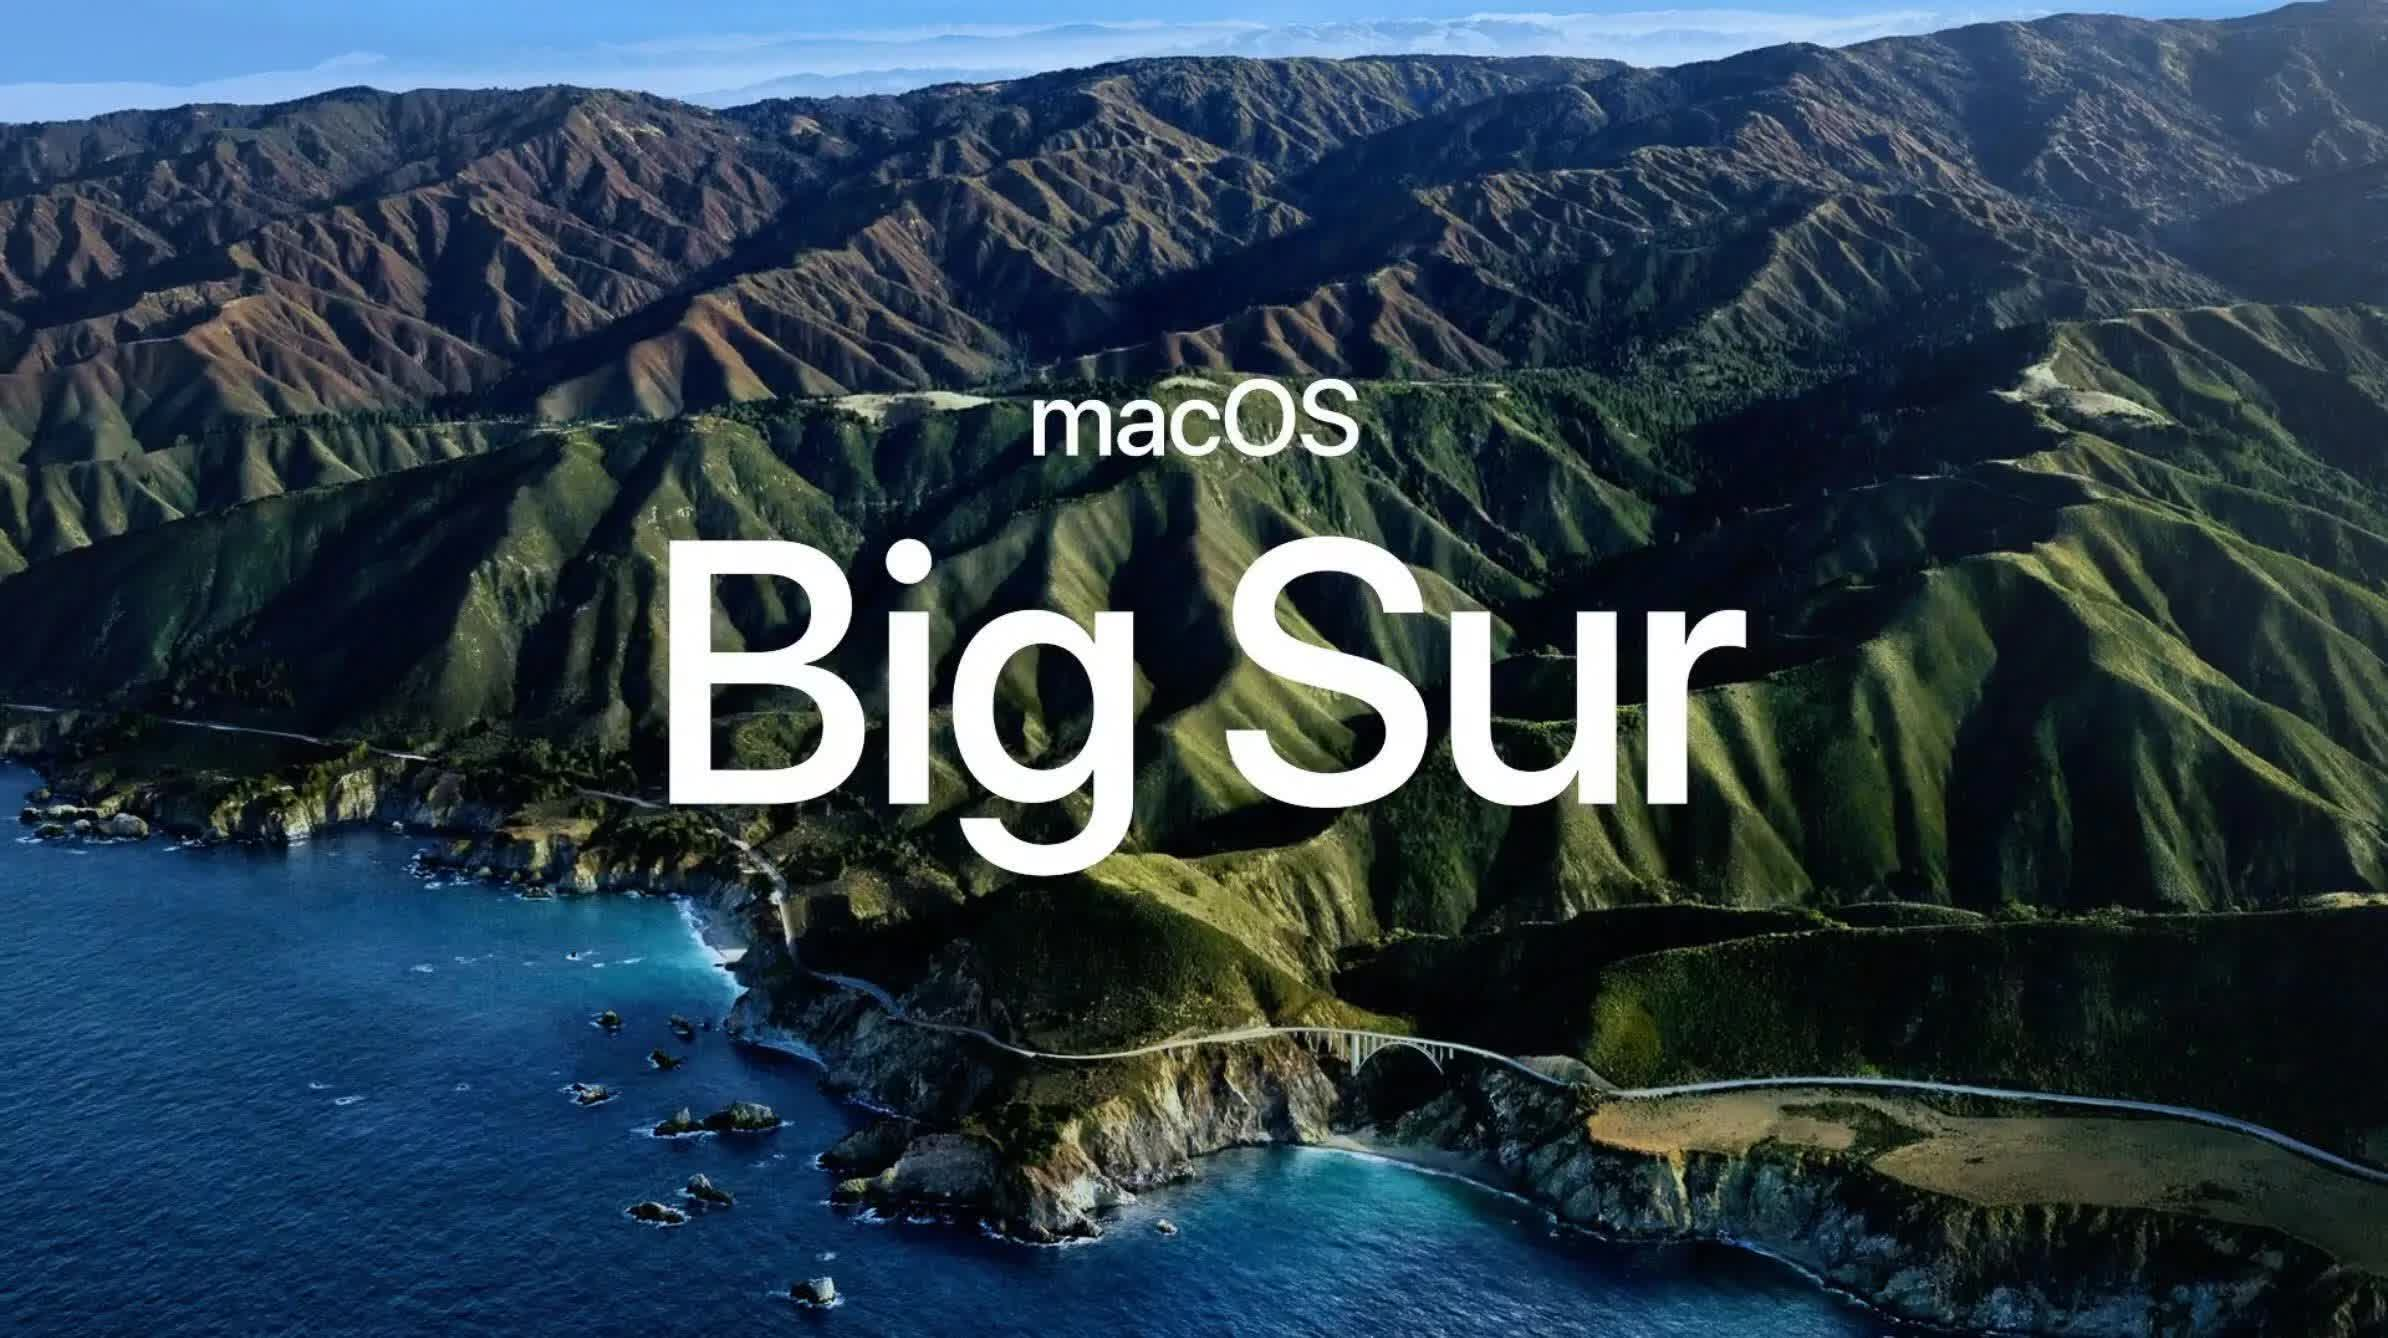 The best new feature in macOS Big Sur 11.3 is a fix for a major security flaw